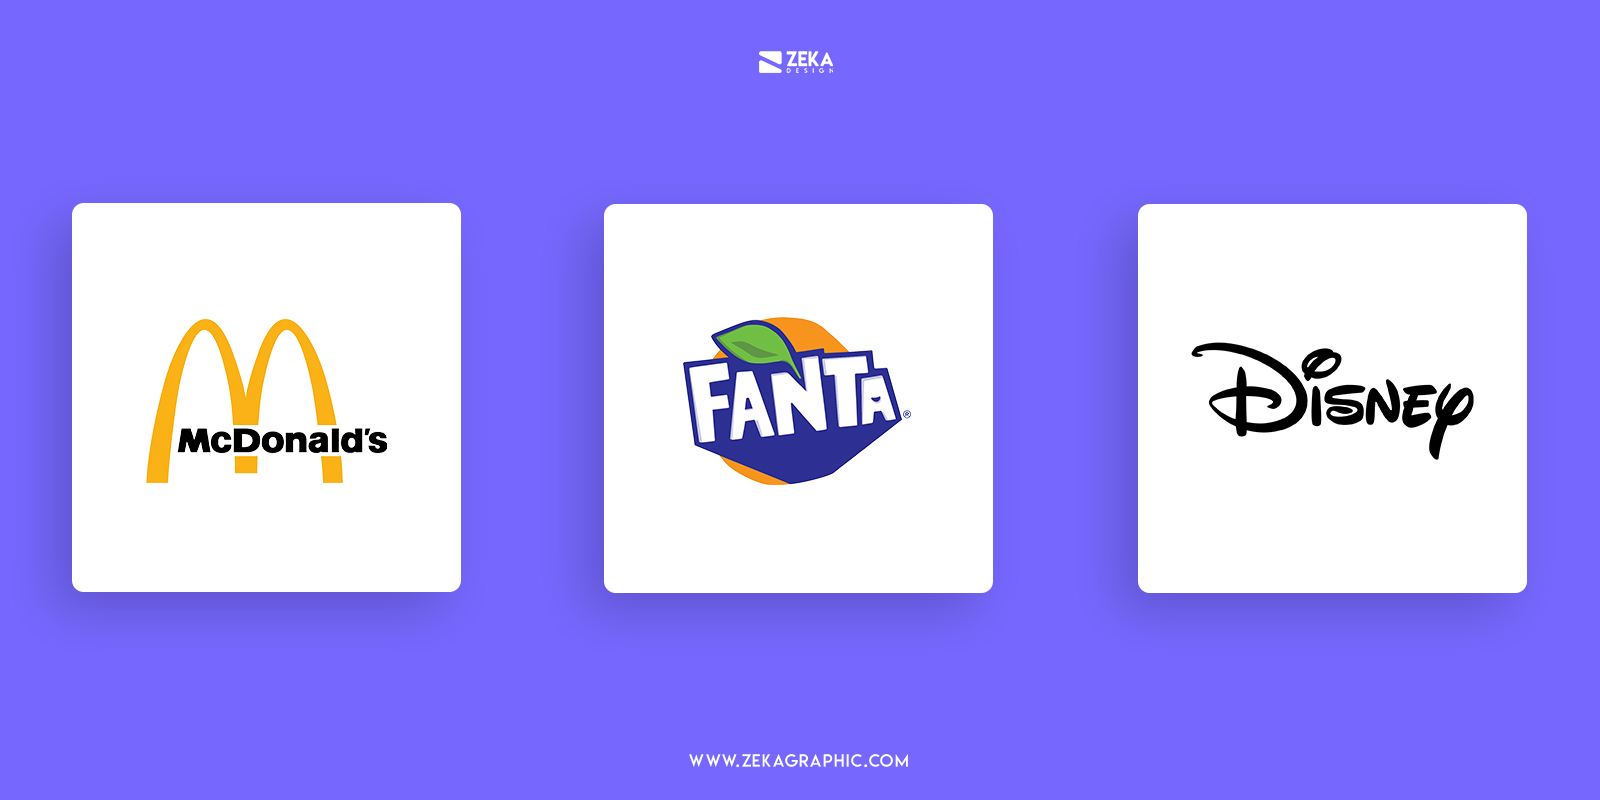 Logo Design Using Display and Decorative Font Typography